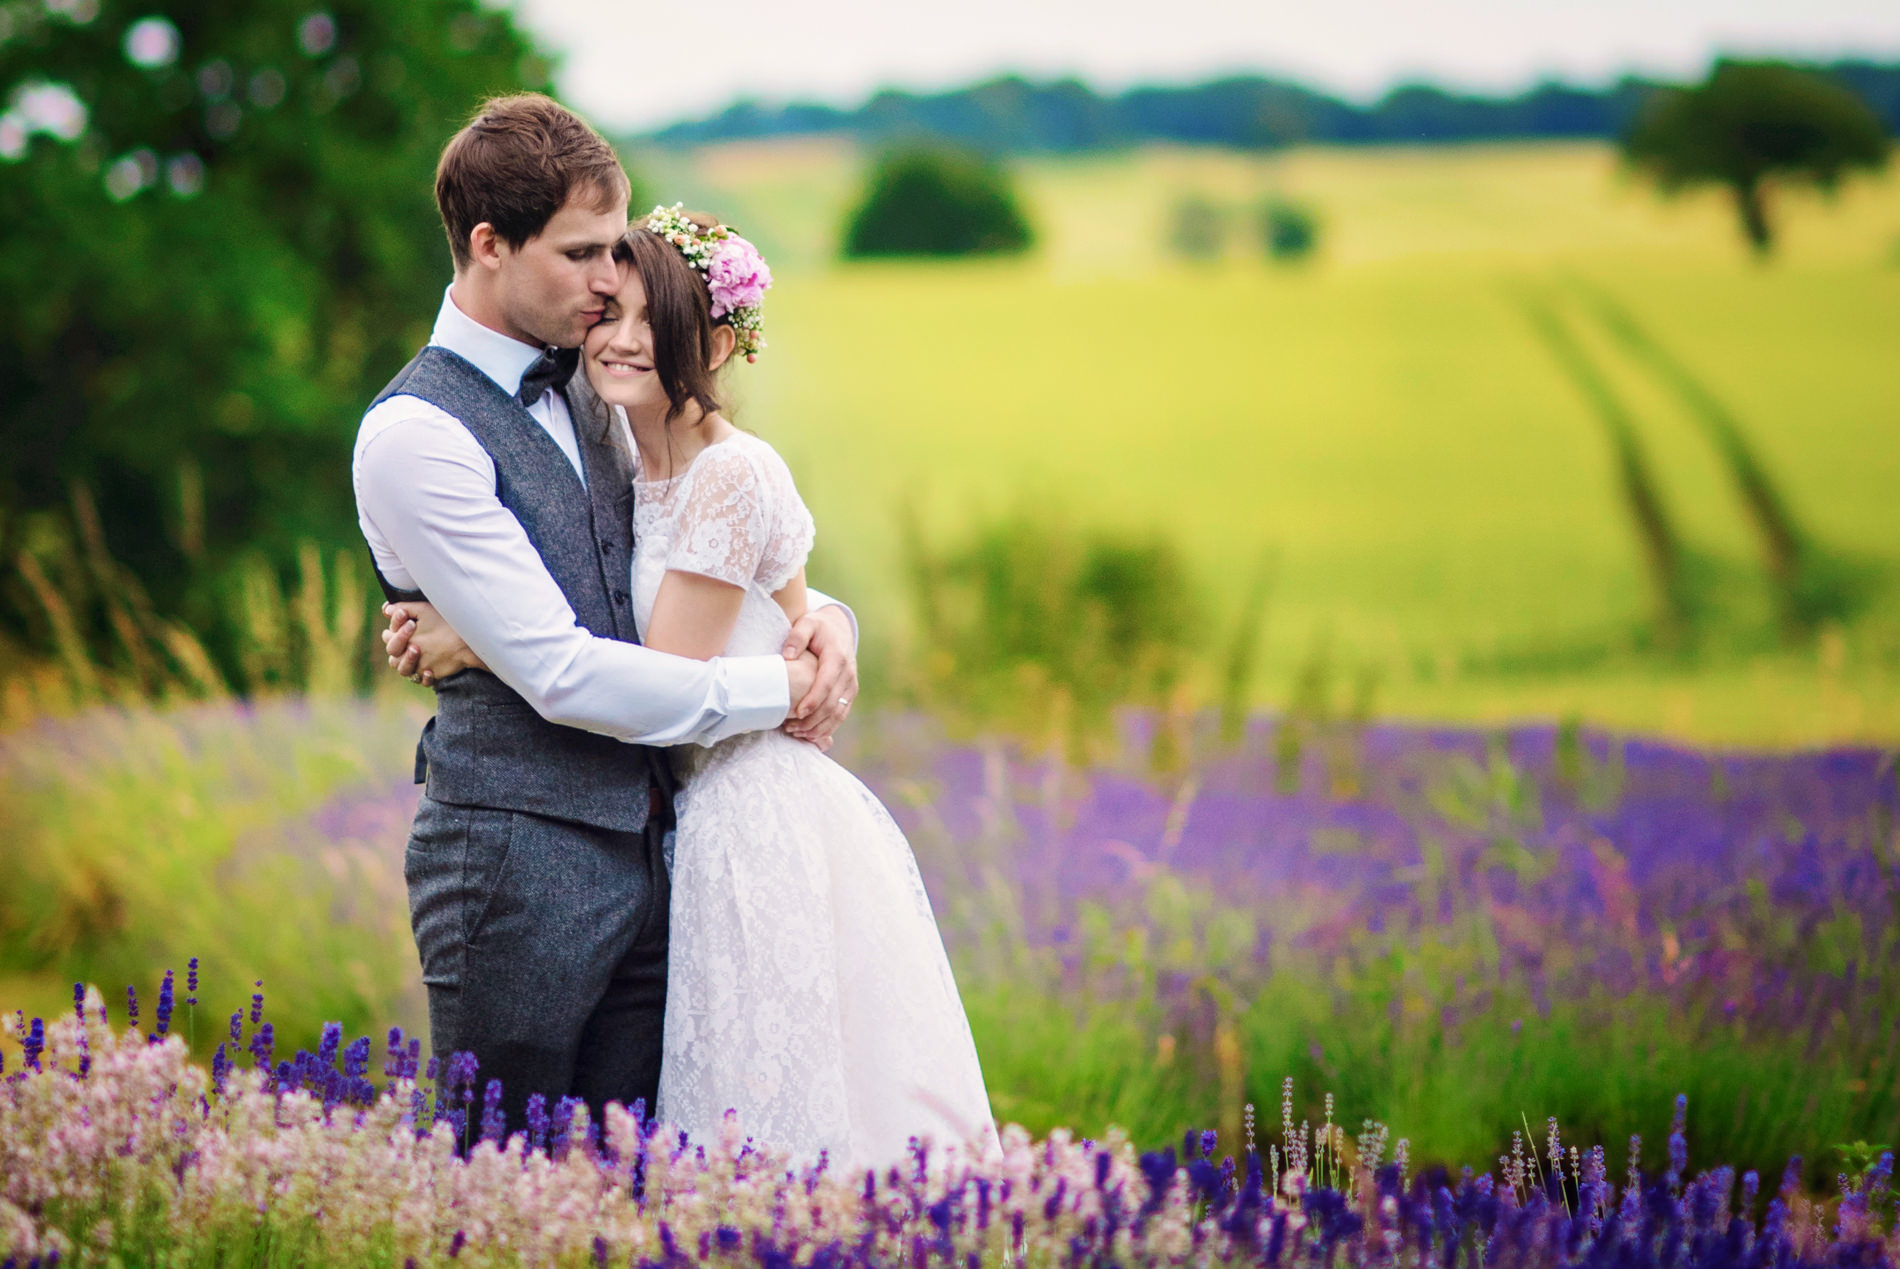 Clairmont lavender farm wedding